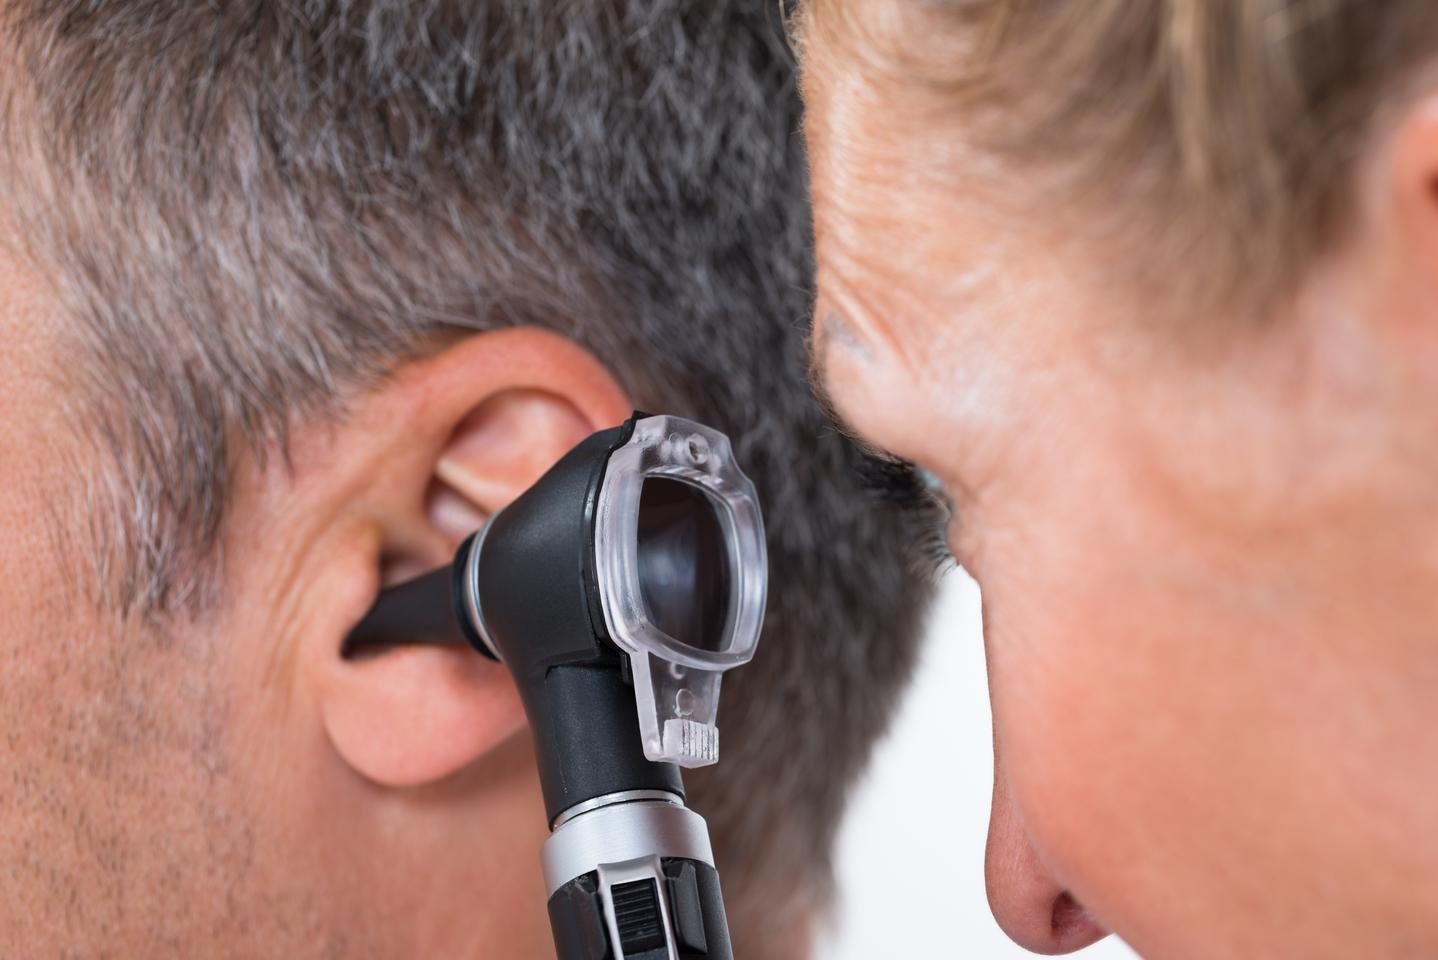 A conventional otoscope, being used to examine a patient's ear